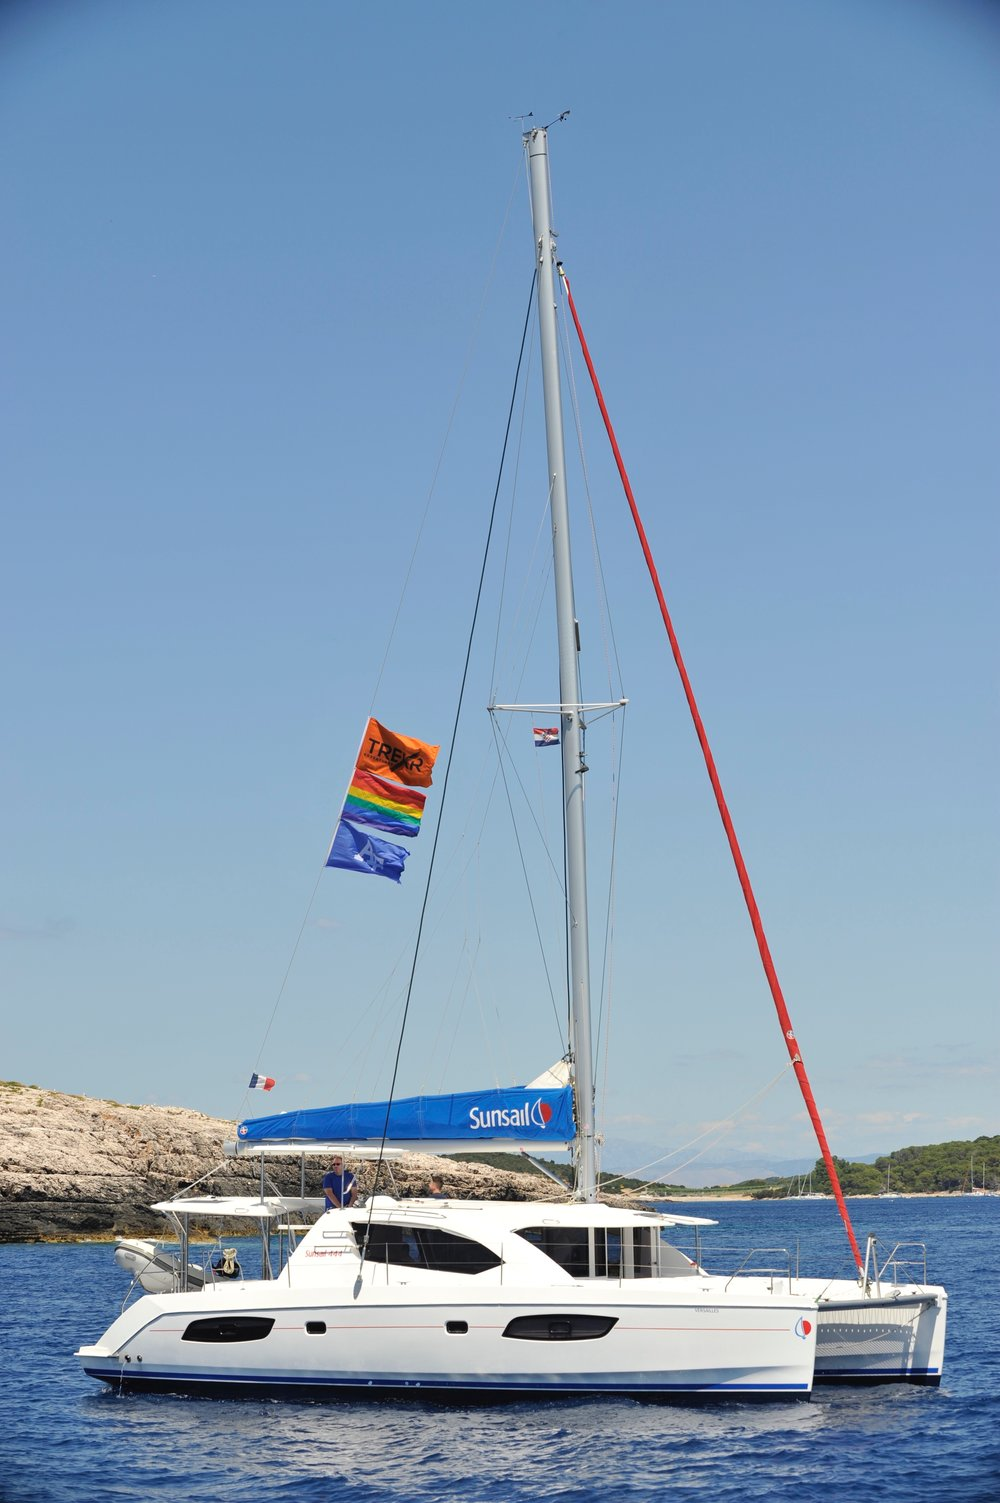 Sunsail 444 Pic.jpeg